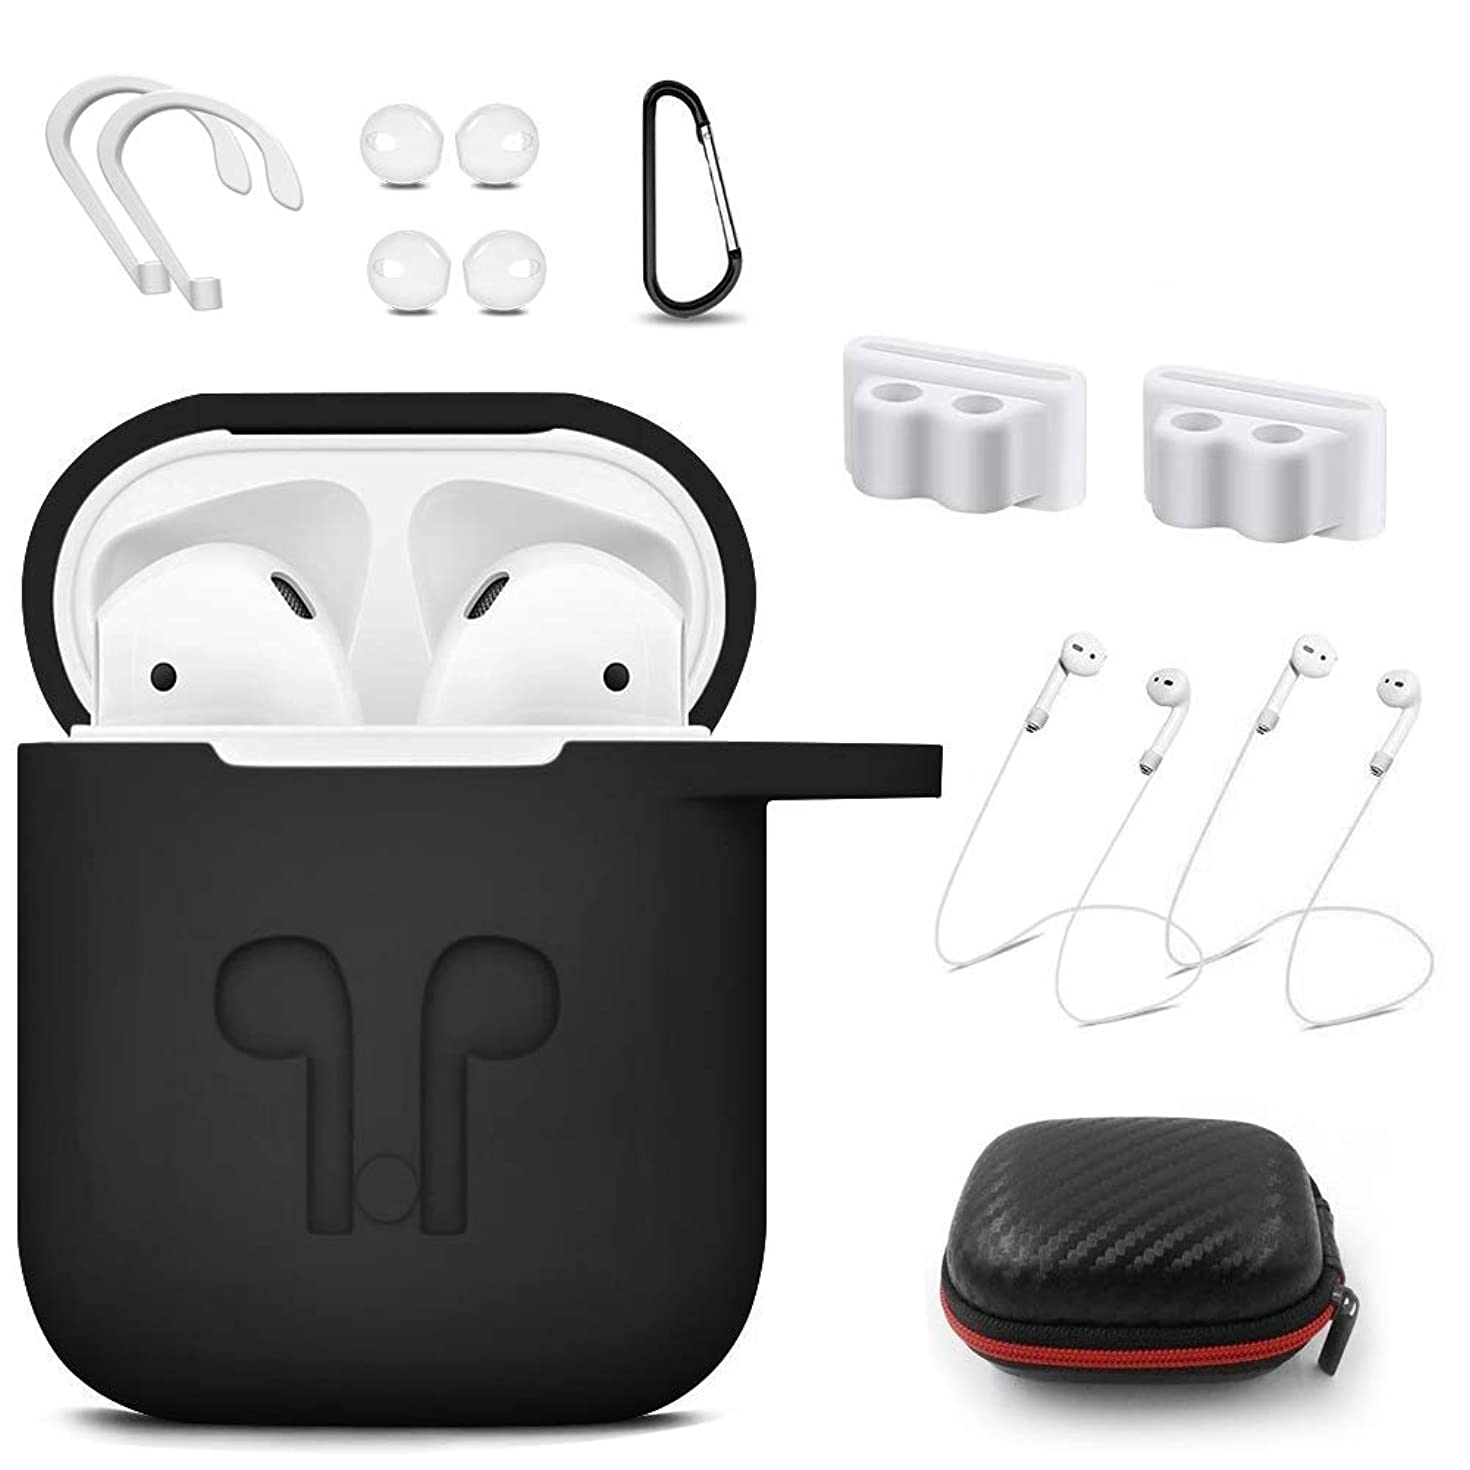 for Airpods Case- Shock Drop Proof air pods Protective Cover Waterproof Soft Skin,Woocon with Strap Protective Silicone Cover with,Watch Band Airpods Holder/Ear Hooks/Keychain//Carrying Box (Black)